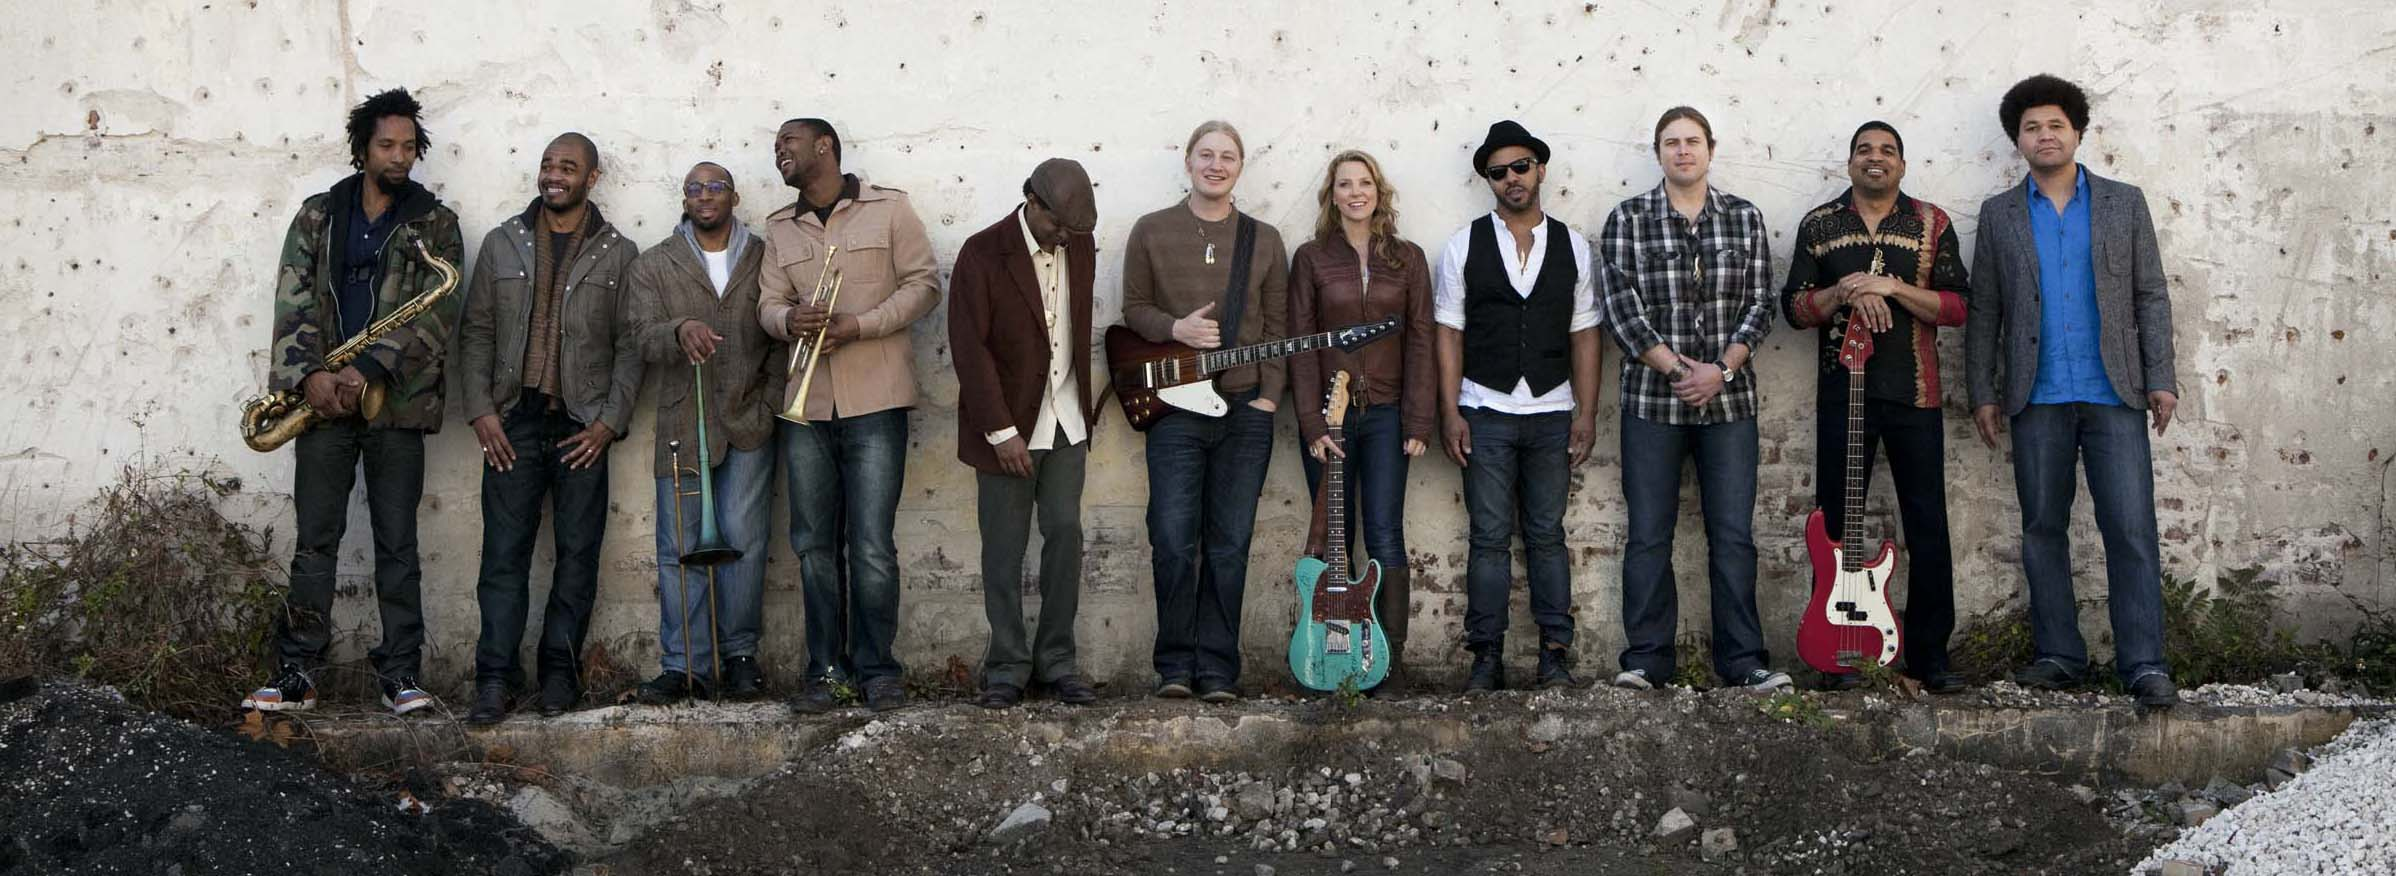 TEDESCHI TRUCKS BAND 1004